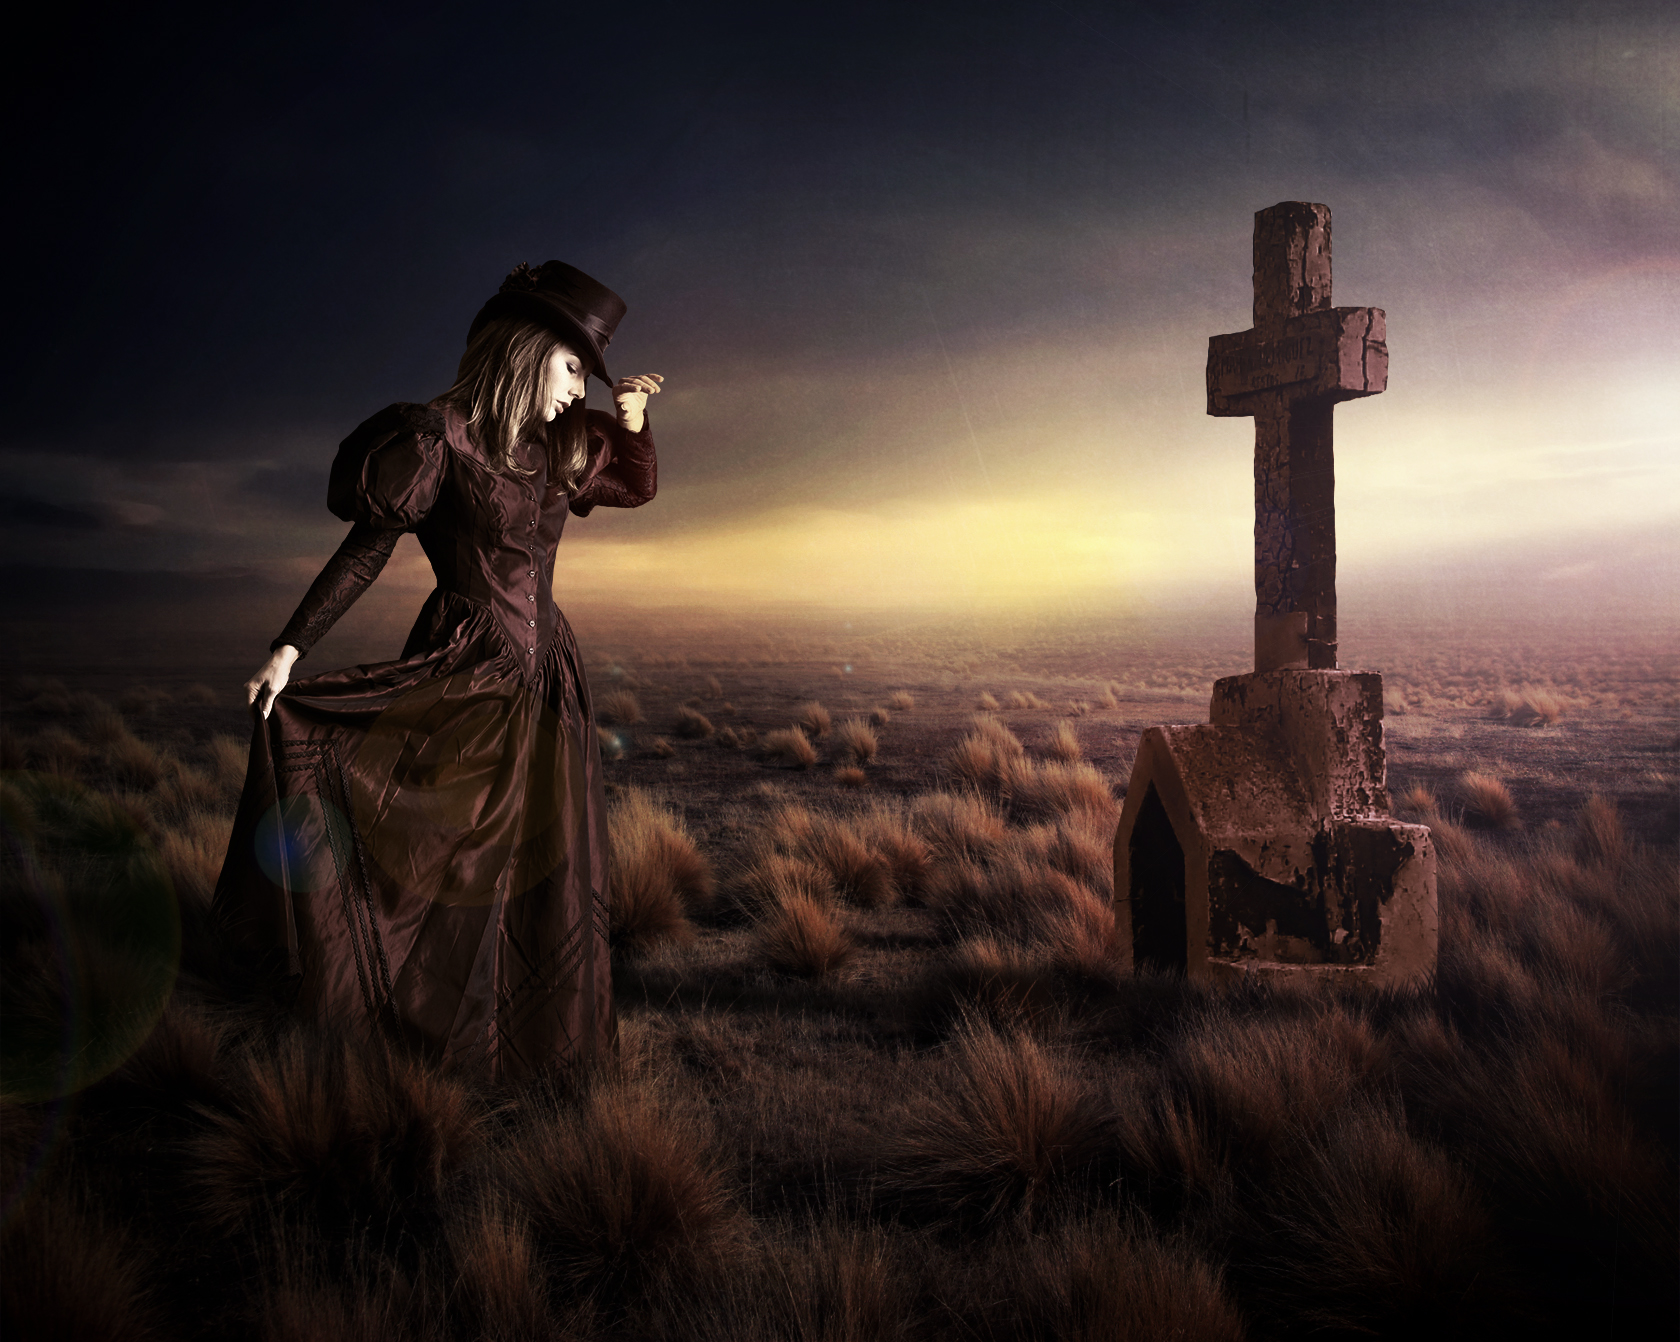 The Vintage Grieving by DomagojTaborski